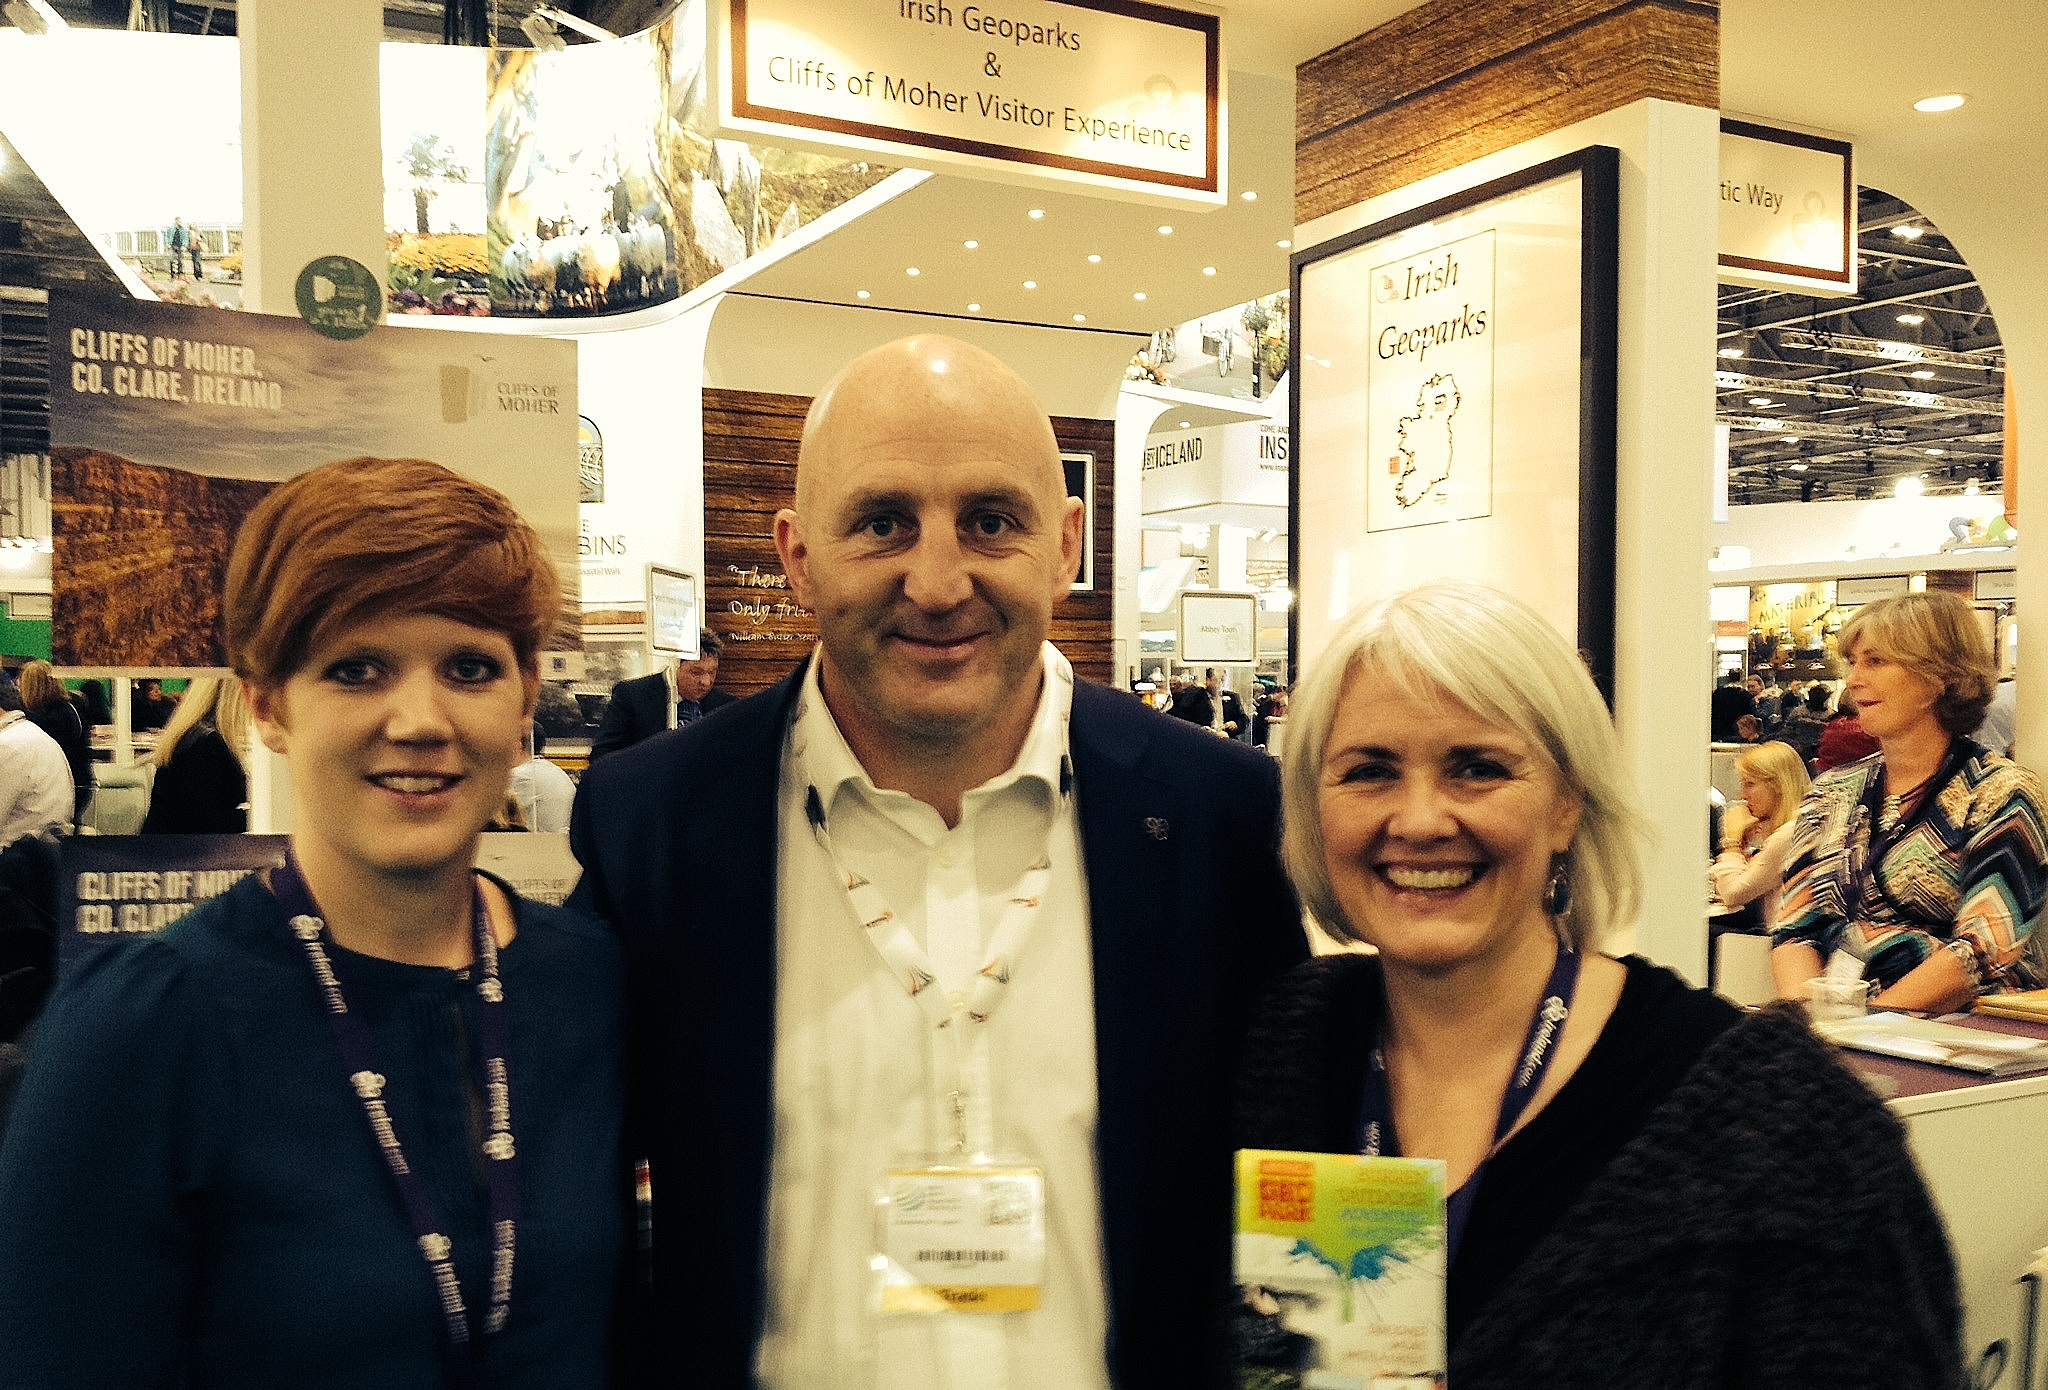 Former Munster, Ireland and Lions rugby star Keith Wood from Killaloe this week joined Kelly Humphries (left) and Carol Gleeson (right) of the Burren and Cliffs of Moher Geopark at the World Travel Market (WTM) in London.